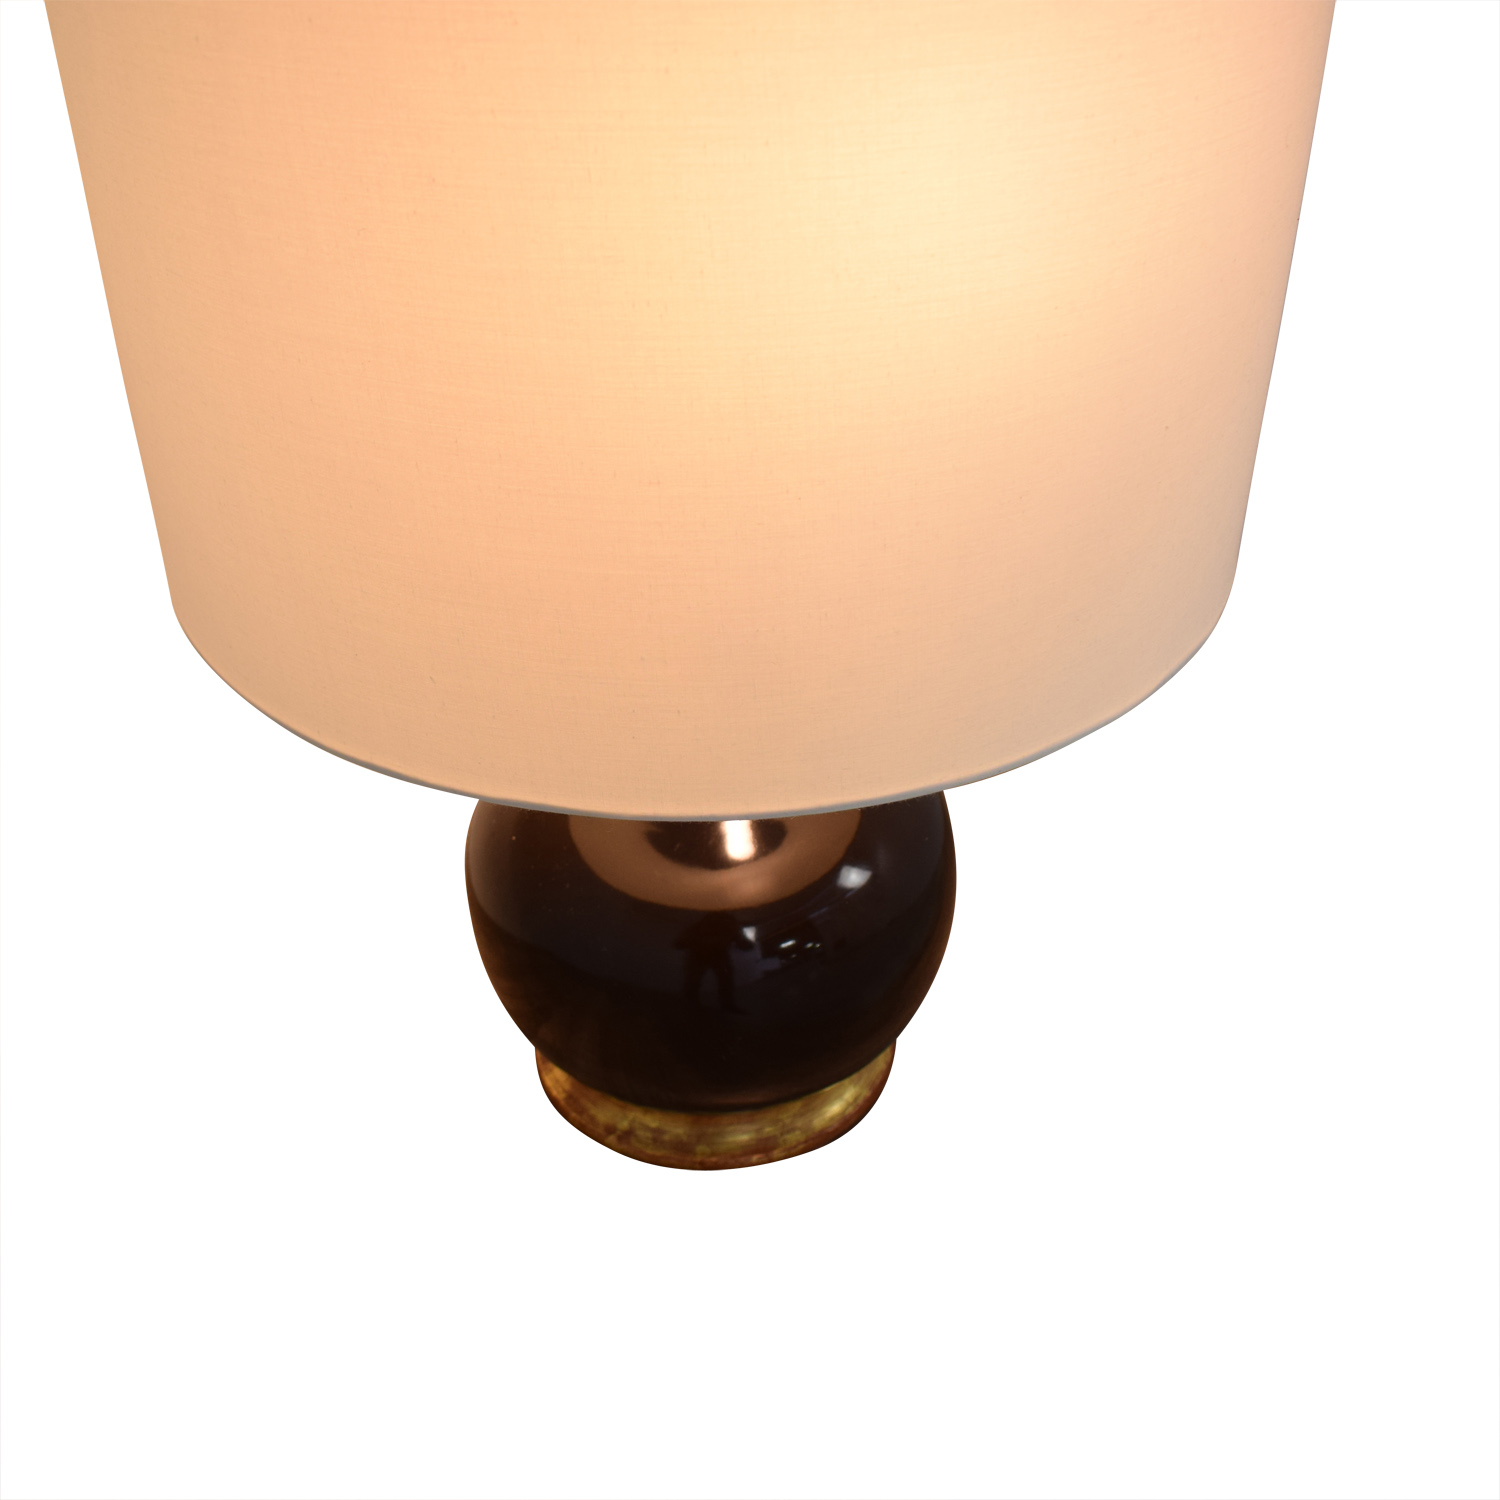 Mecox Gardens Christopher Spitzmiller Brown Lamps / Lamps